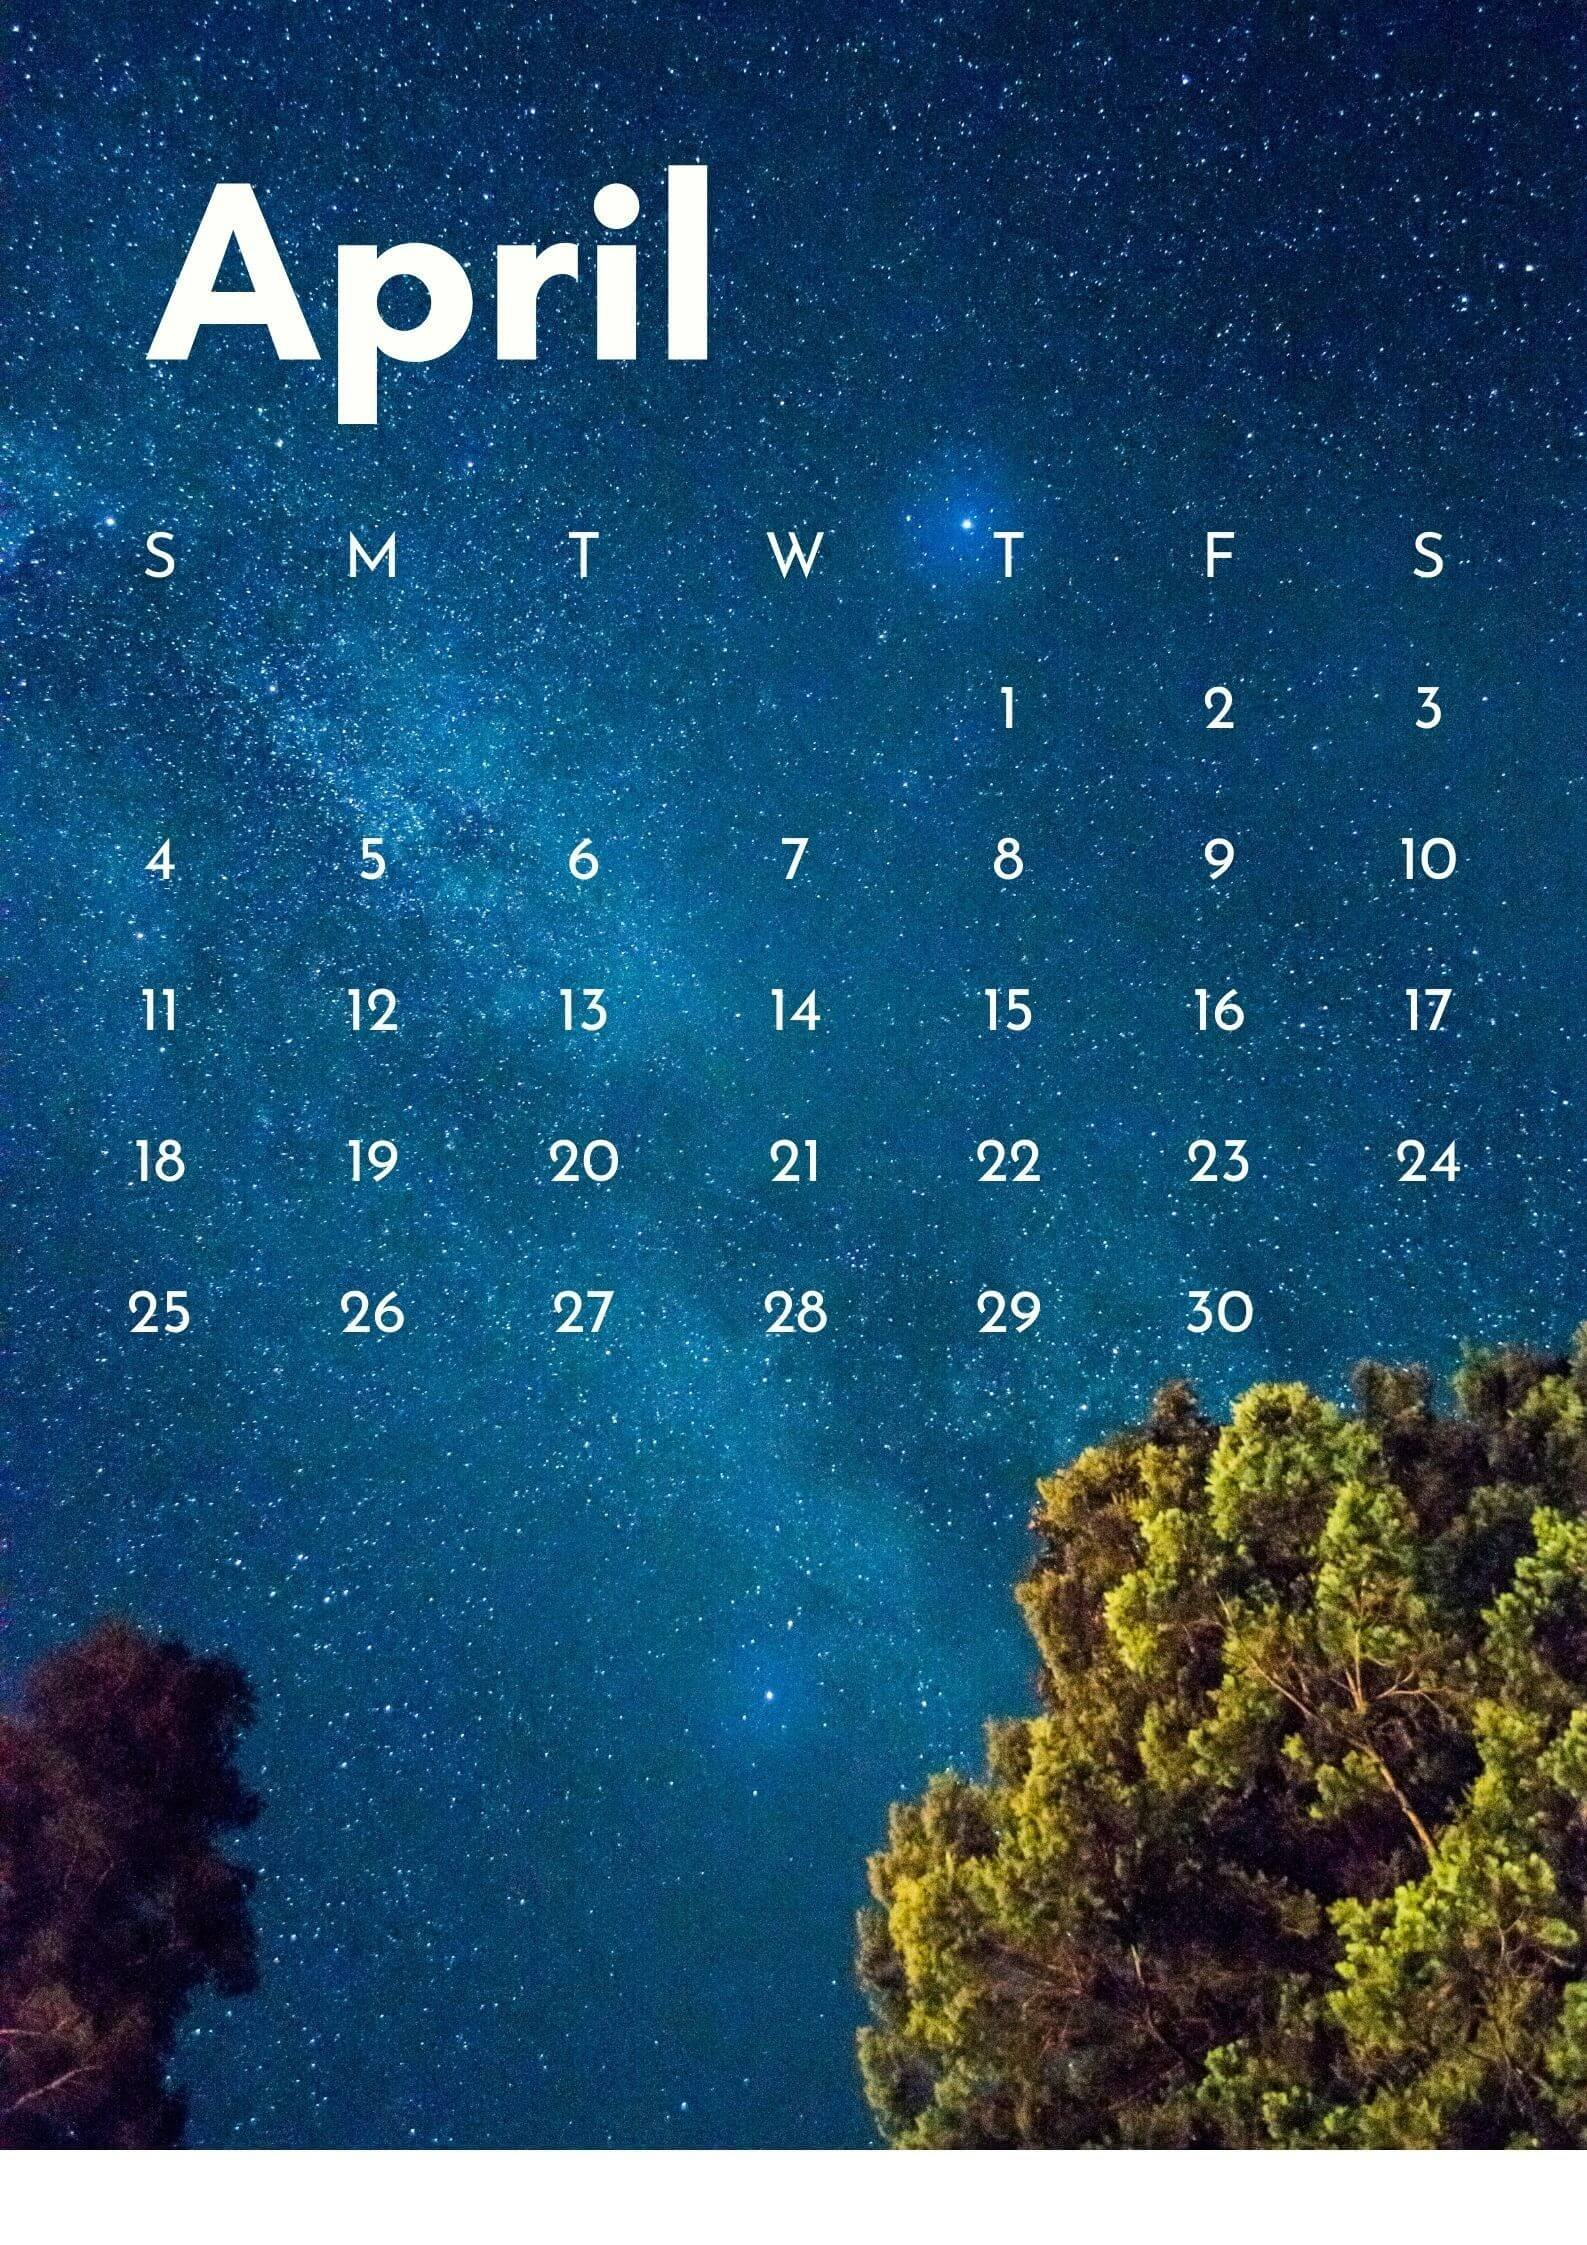 April 2021 Calendar Wallpaper for Mobile Phone